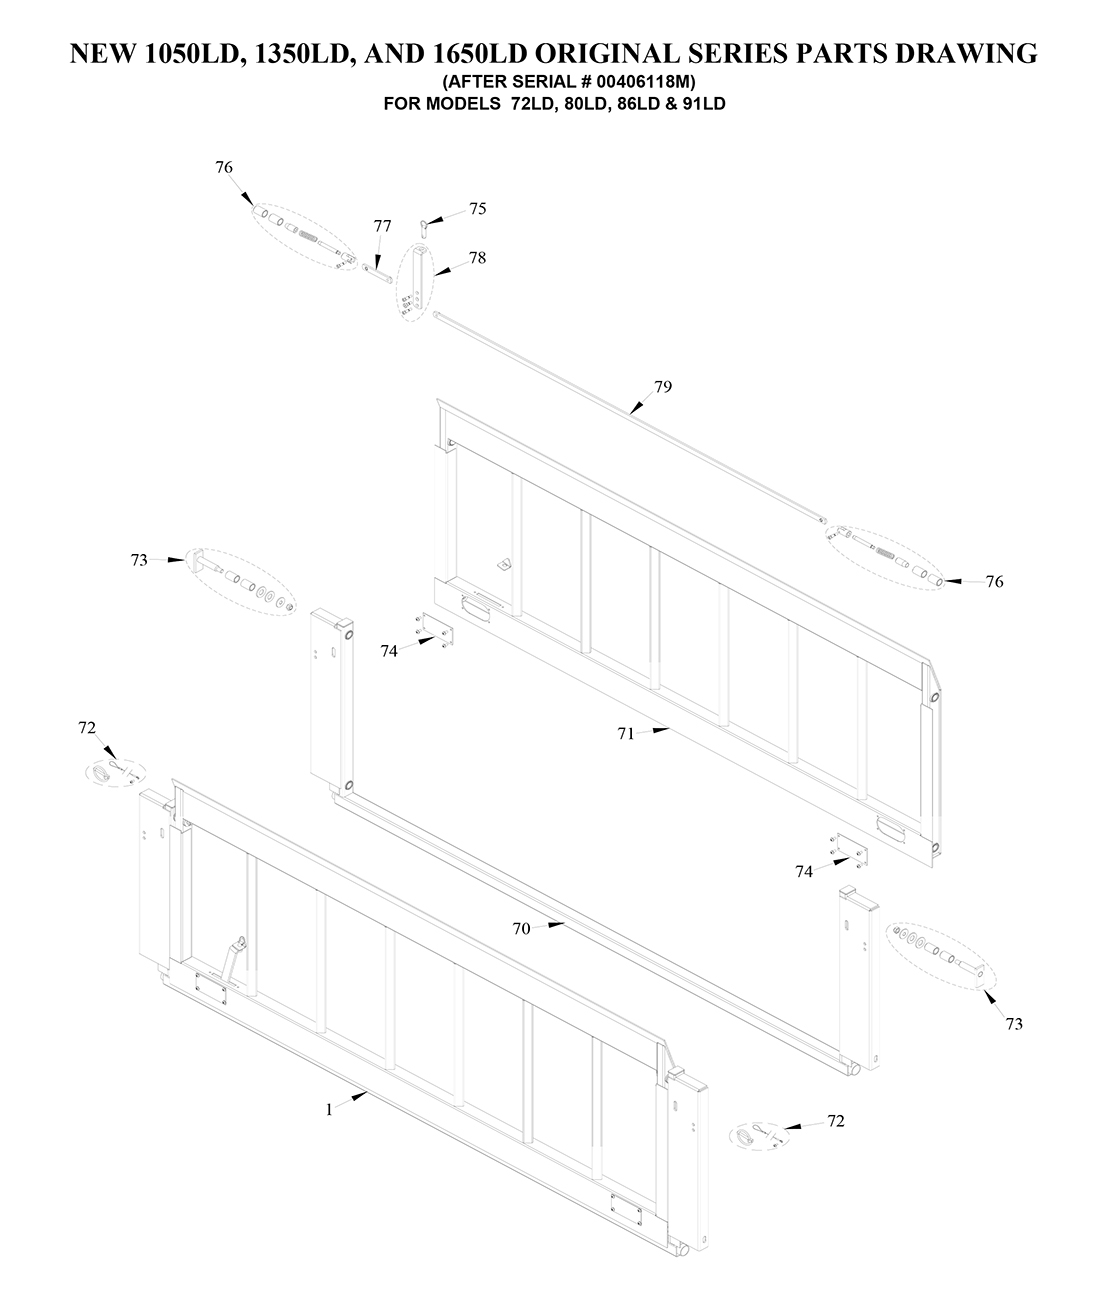 Tommy Gate Original Series Lift-And-Dump Diagram [Flatbed, Stake & Van